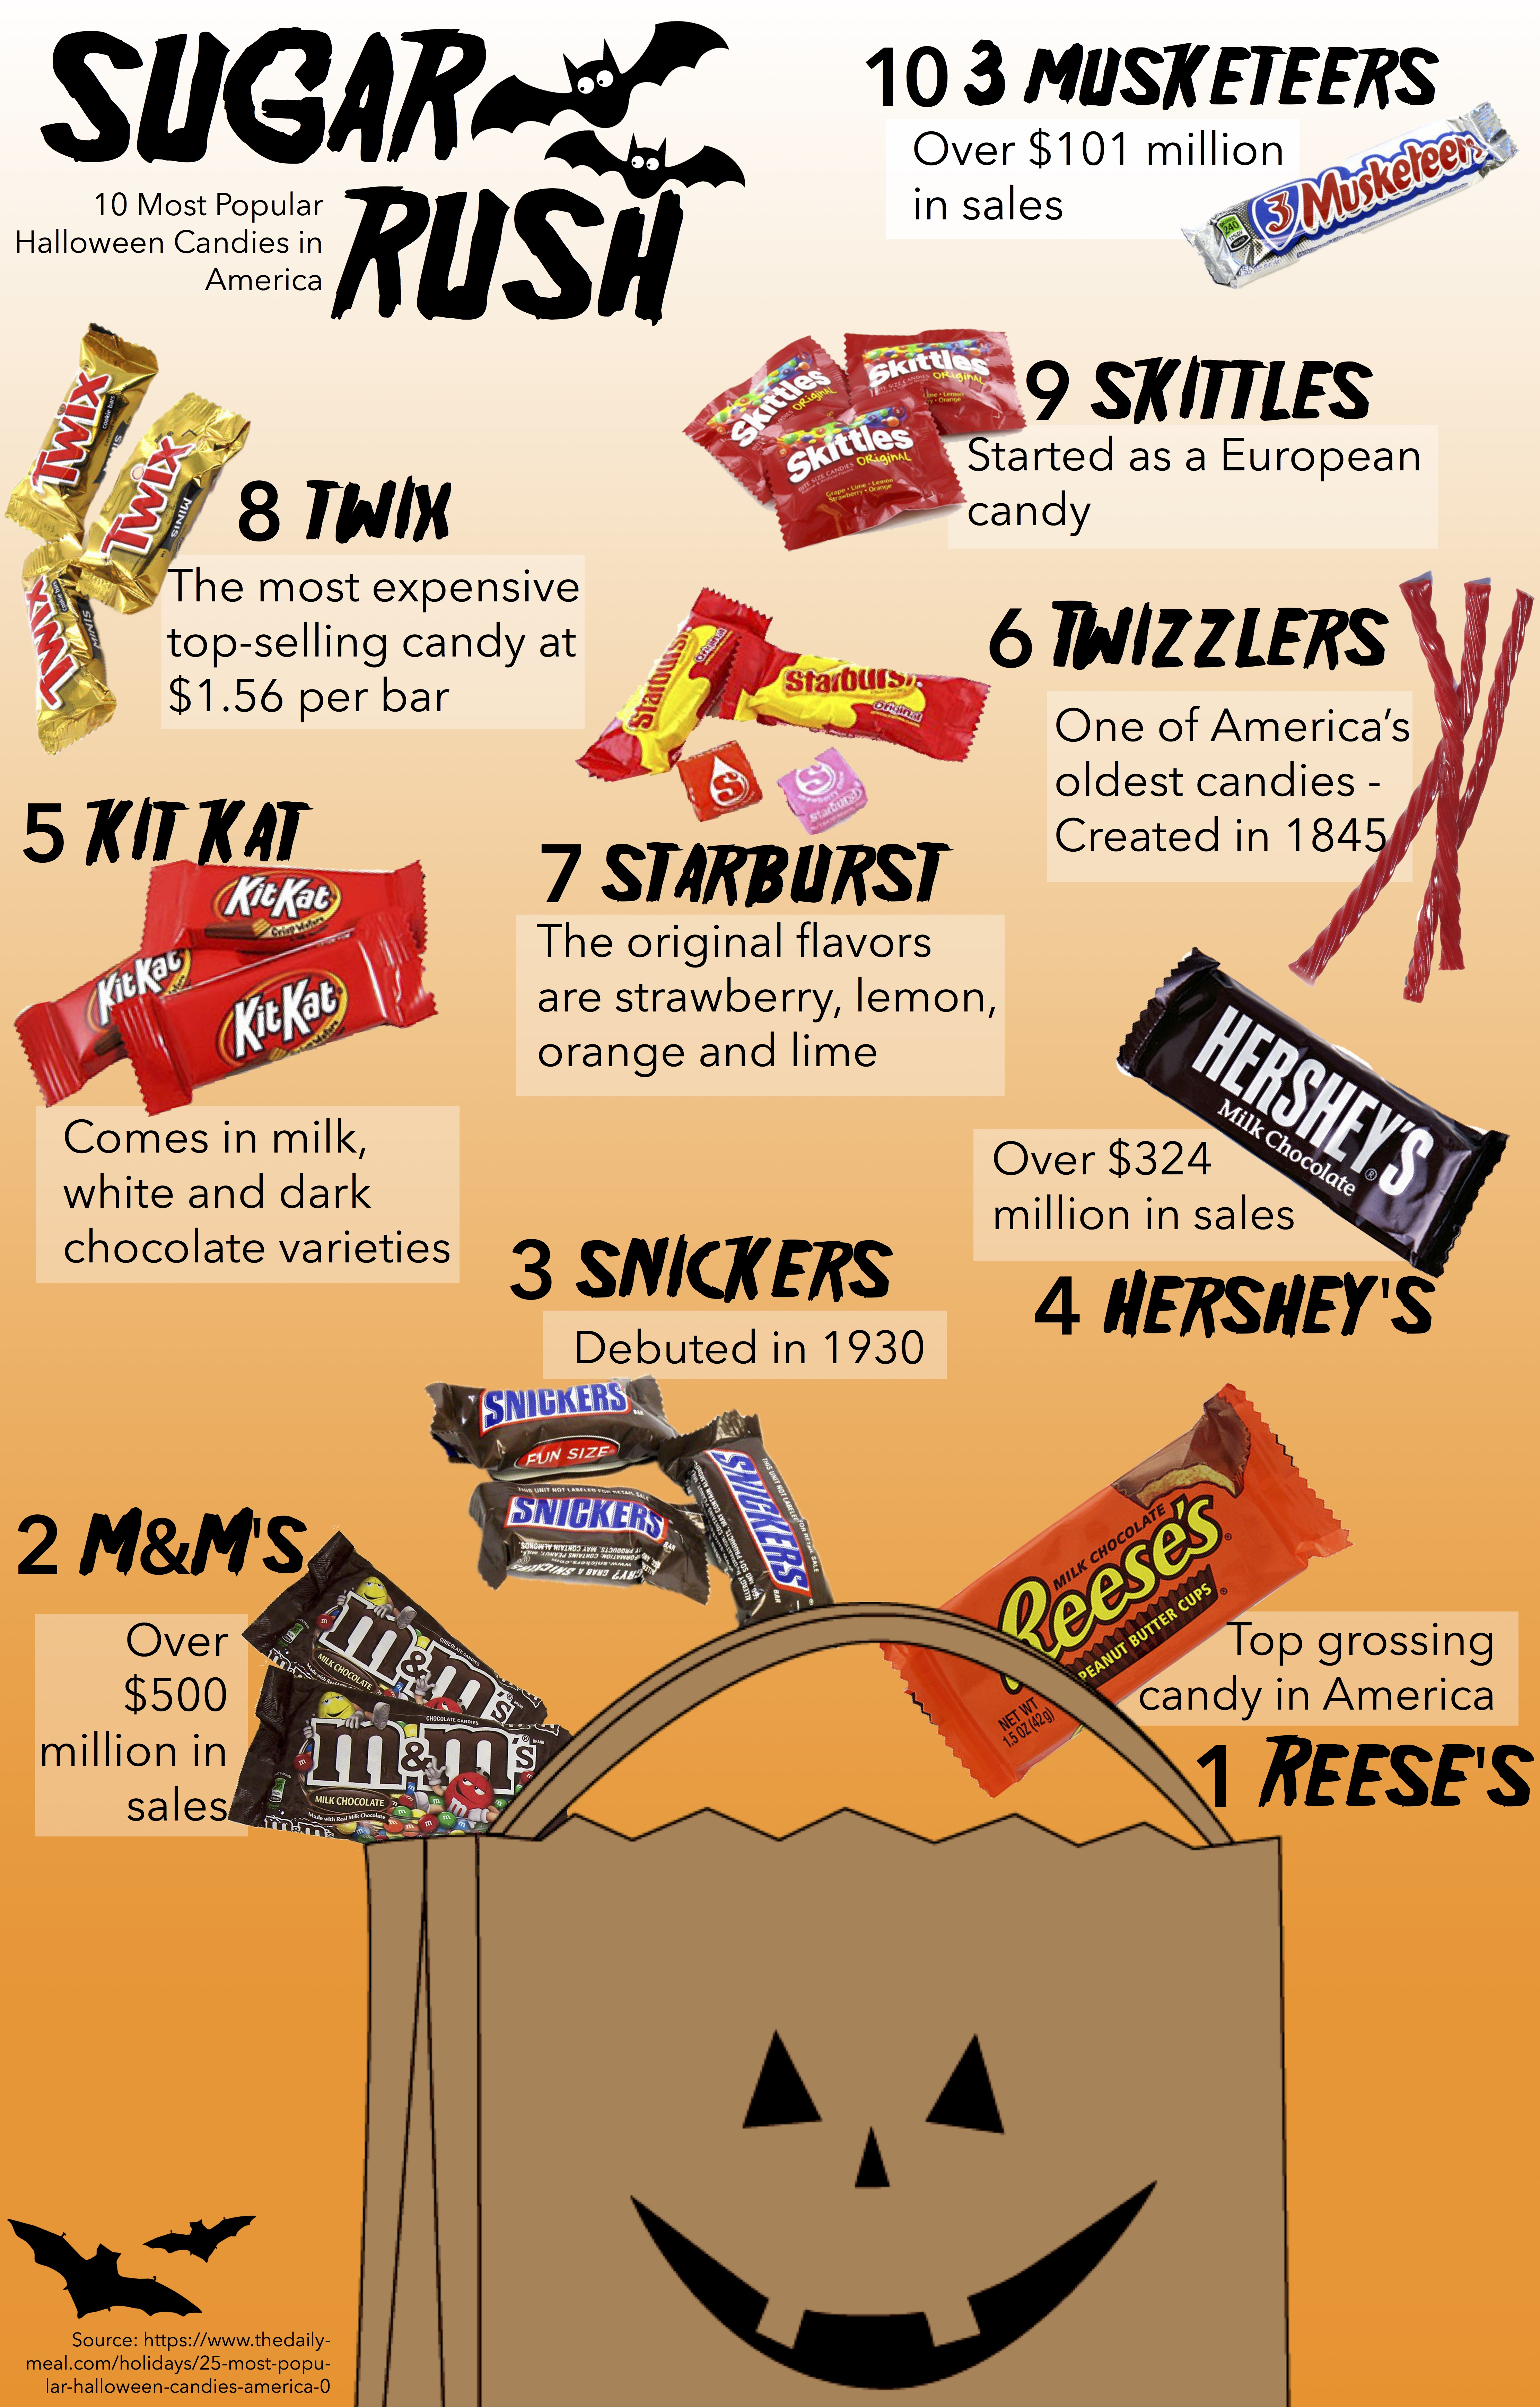 sugar rush: the 10 most popular halloween candies in america